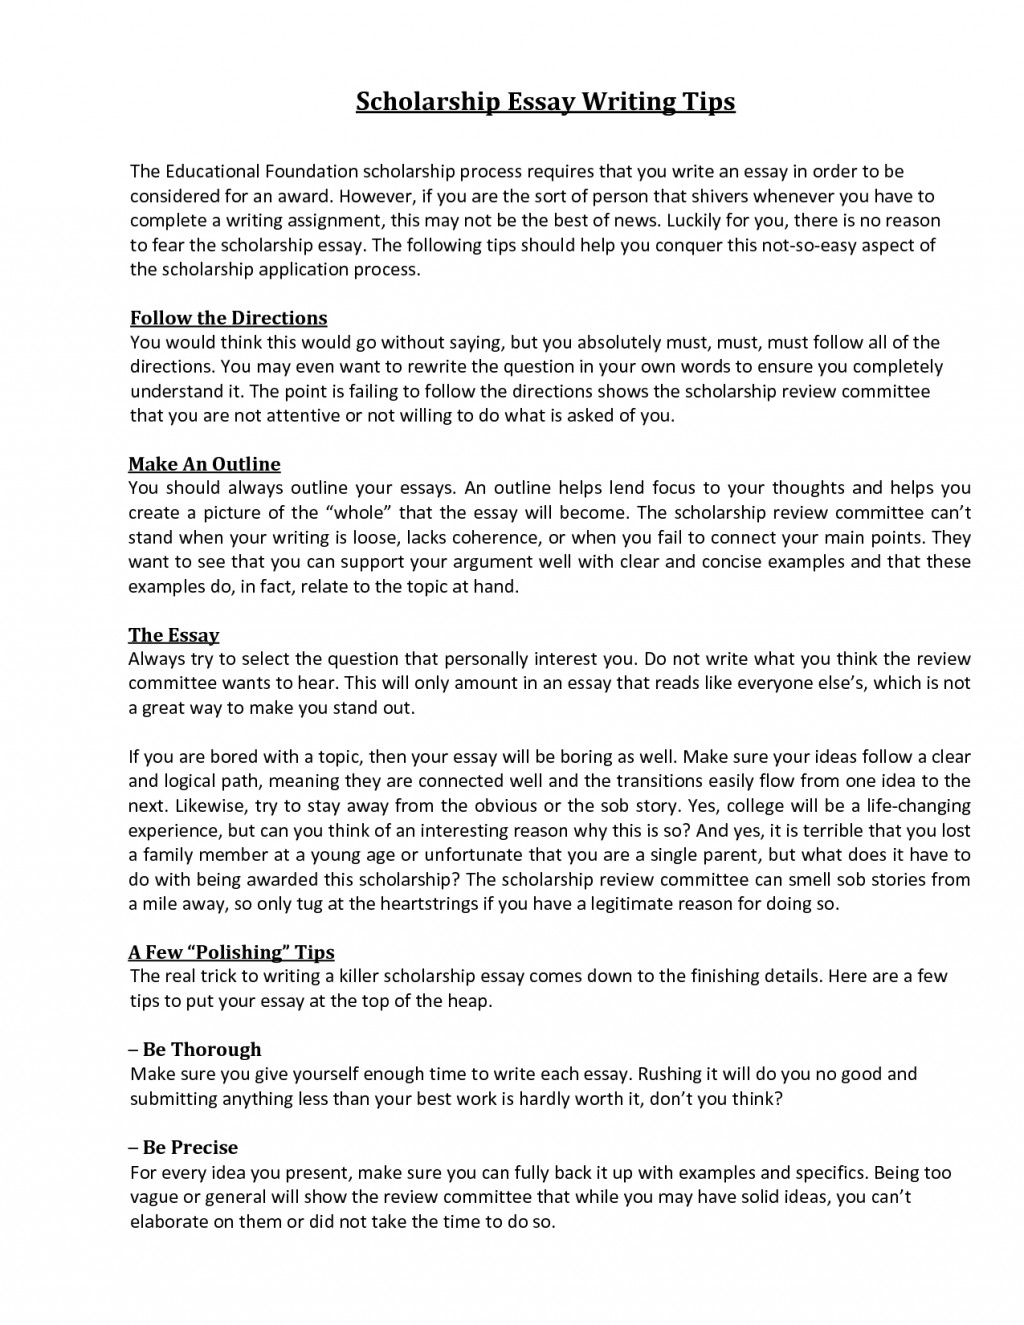 008 Essay Example Nhs Scholarship Prompt Archives Madhurbatter College Topics List Application Examples Gecce Tackletar Magnificent Prompts Robertson 2018-19 Vanderbilt Washington And Lee Johnson Large